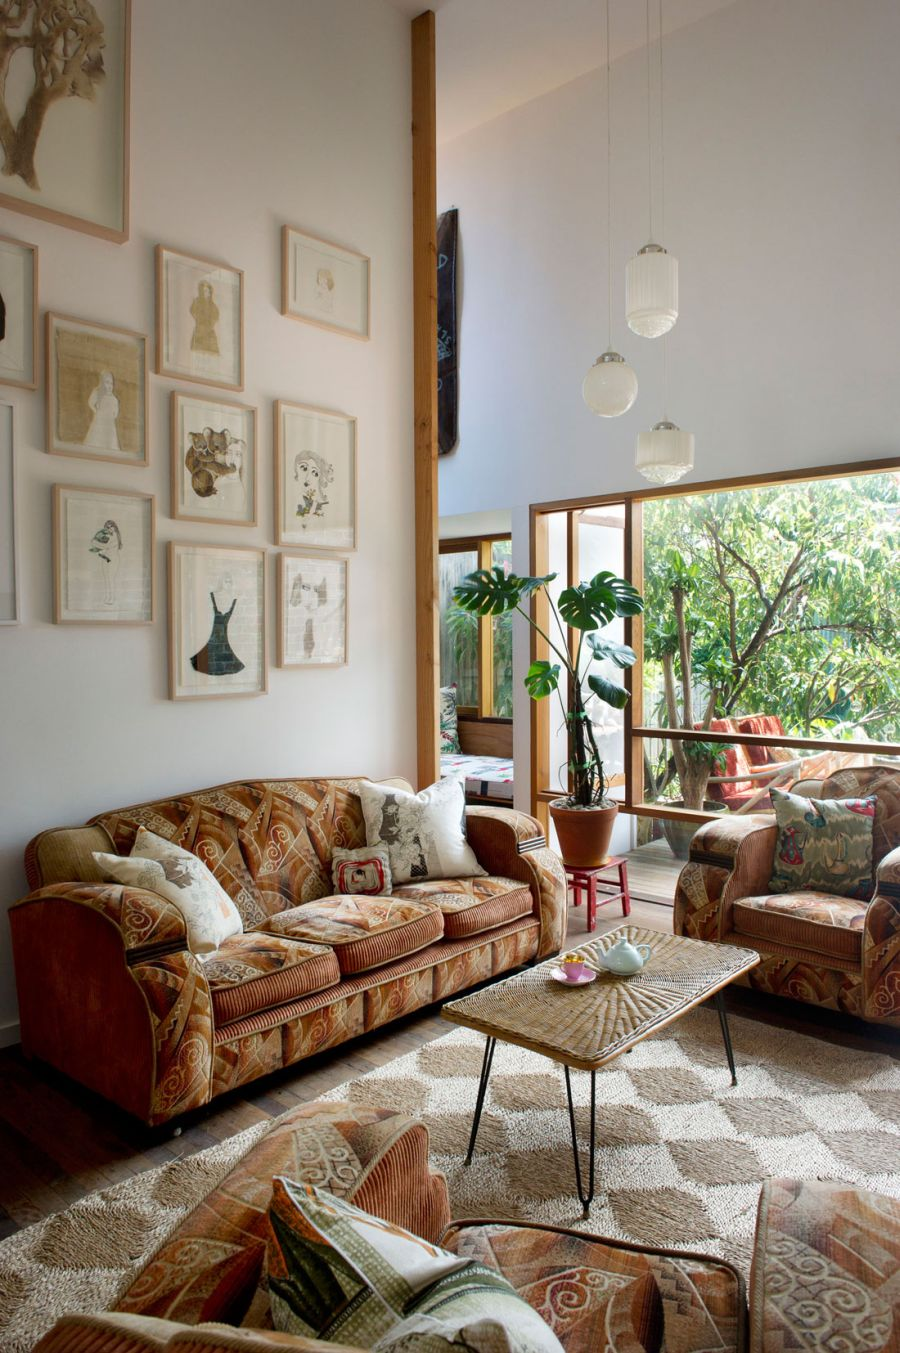 Living room with eclectic theme